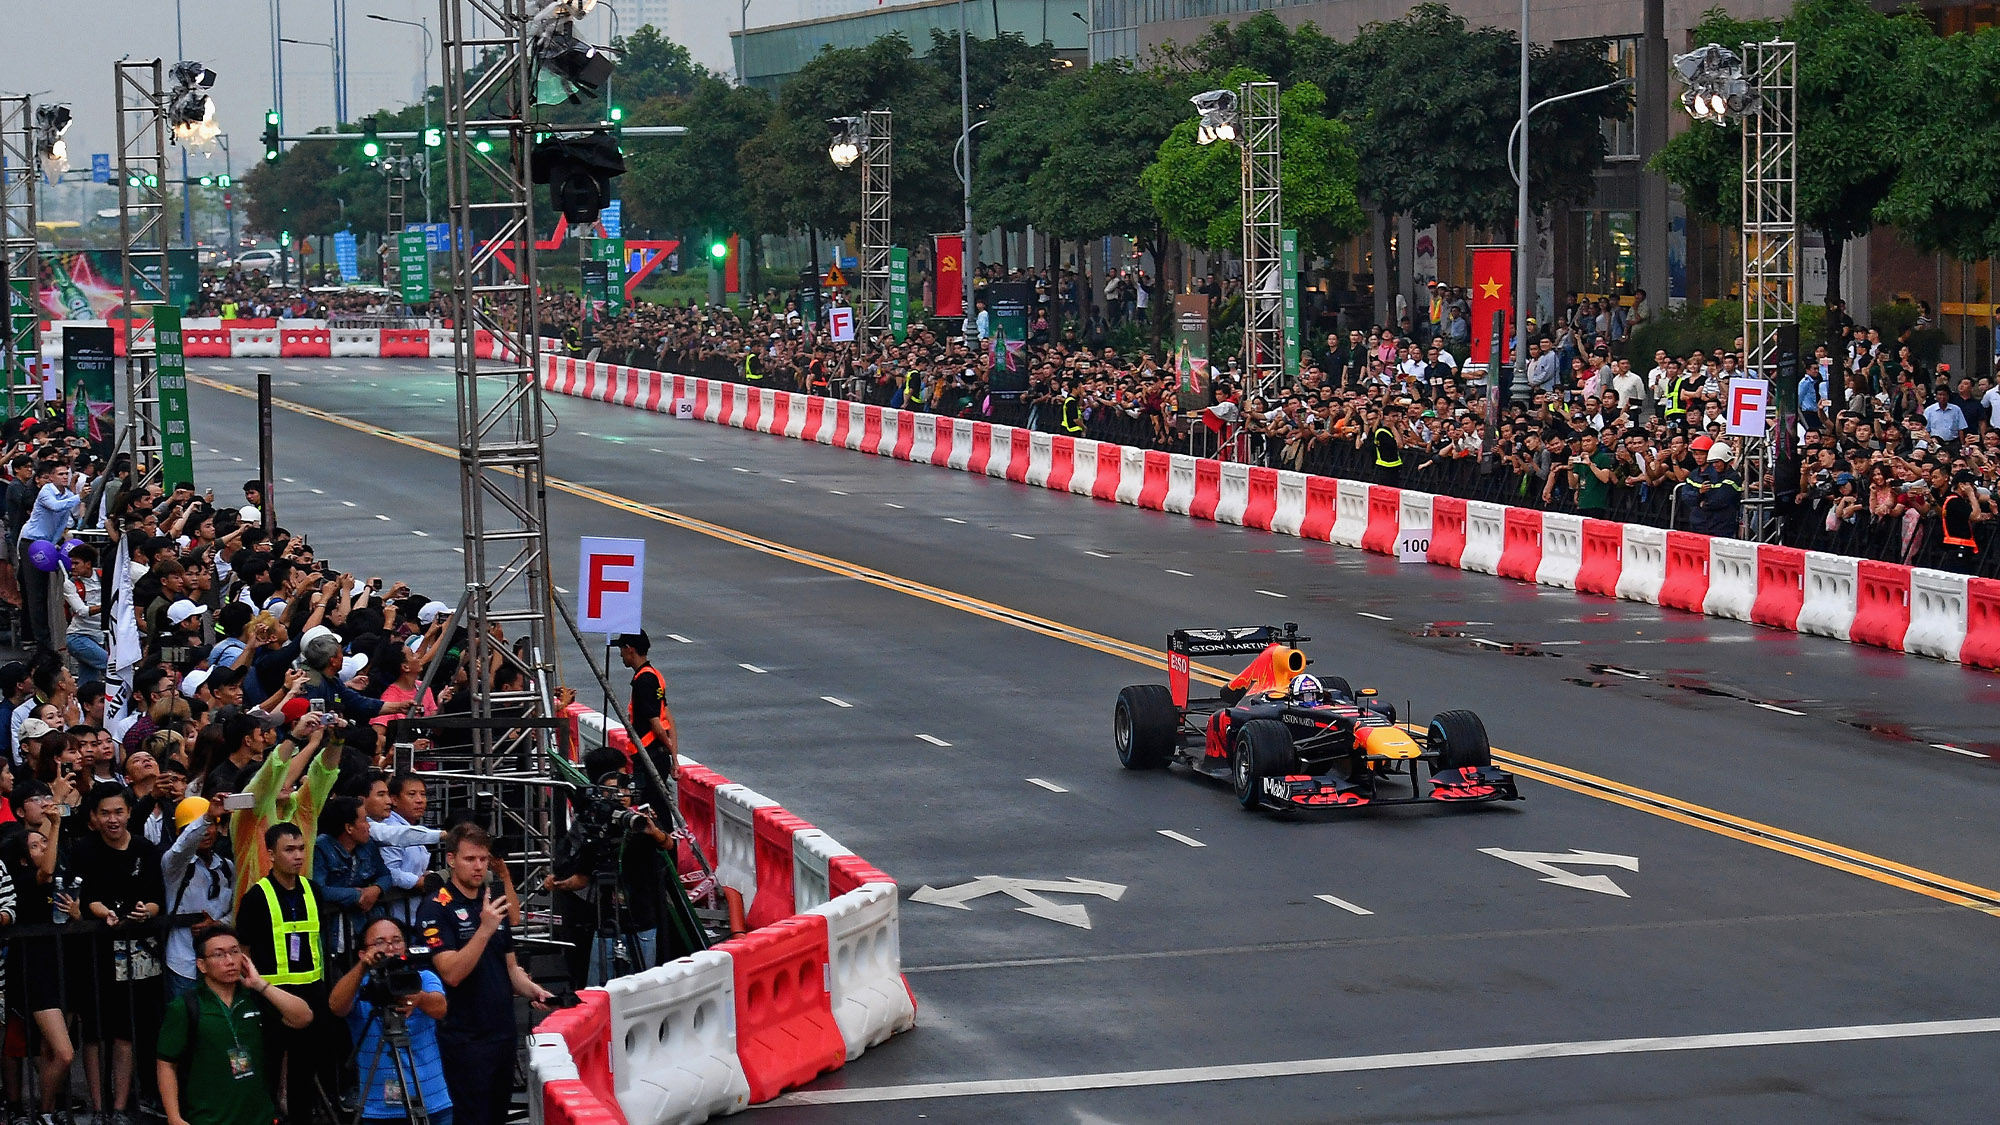 David Coulthard on a demonstration run in Ho Chi Minh City